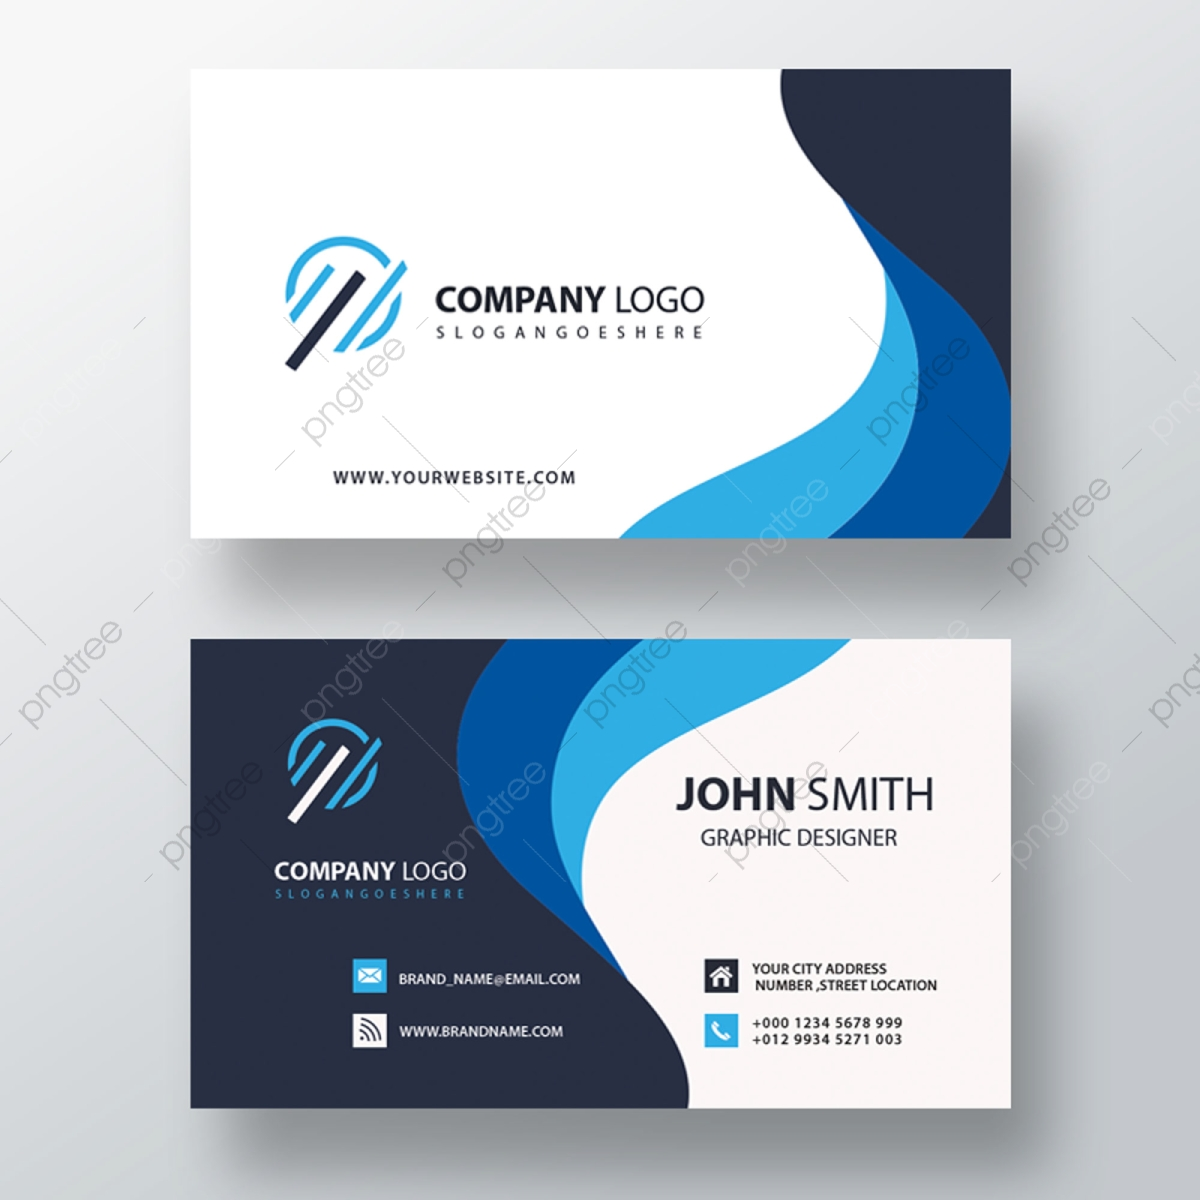 hight resolution of commercial use resource upgrade to premium plan and get license authorization upgradenow blue wavy business card